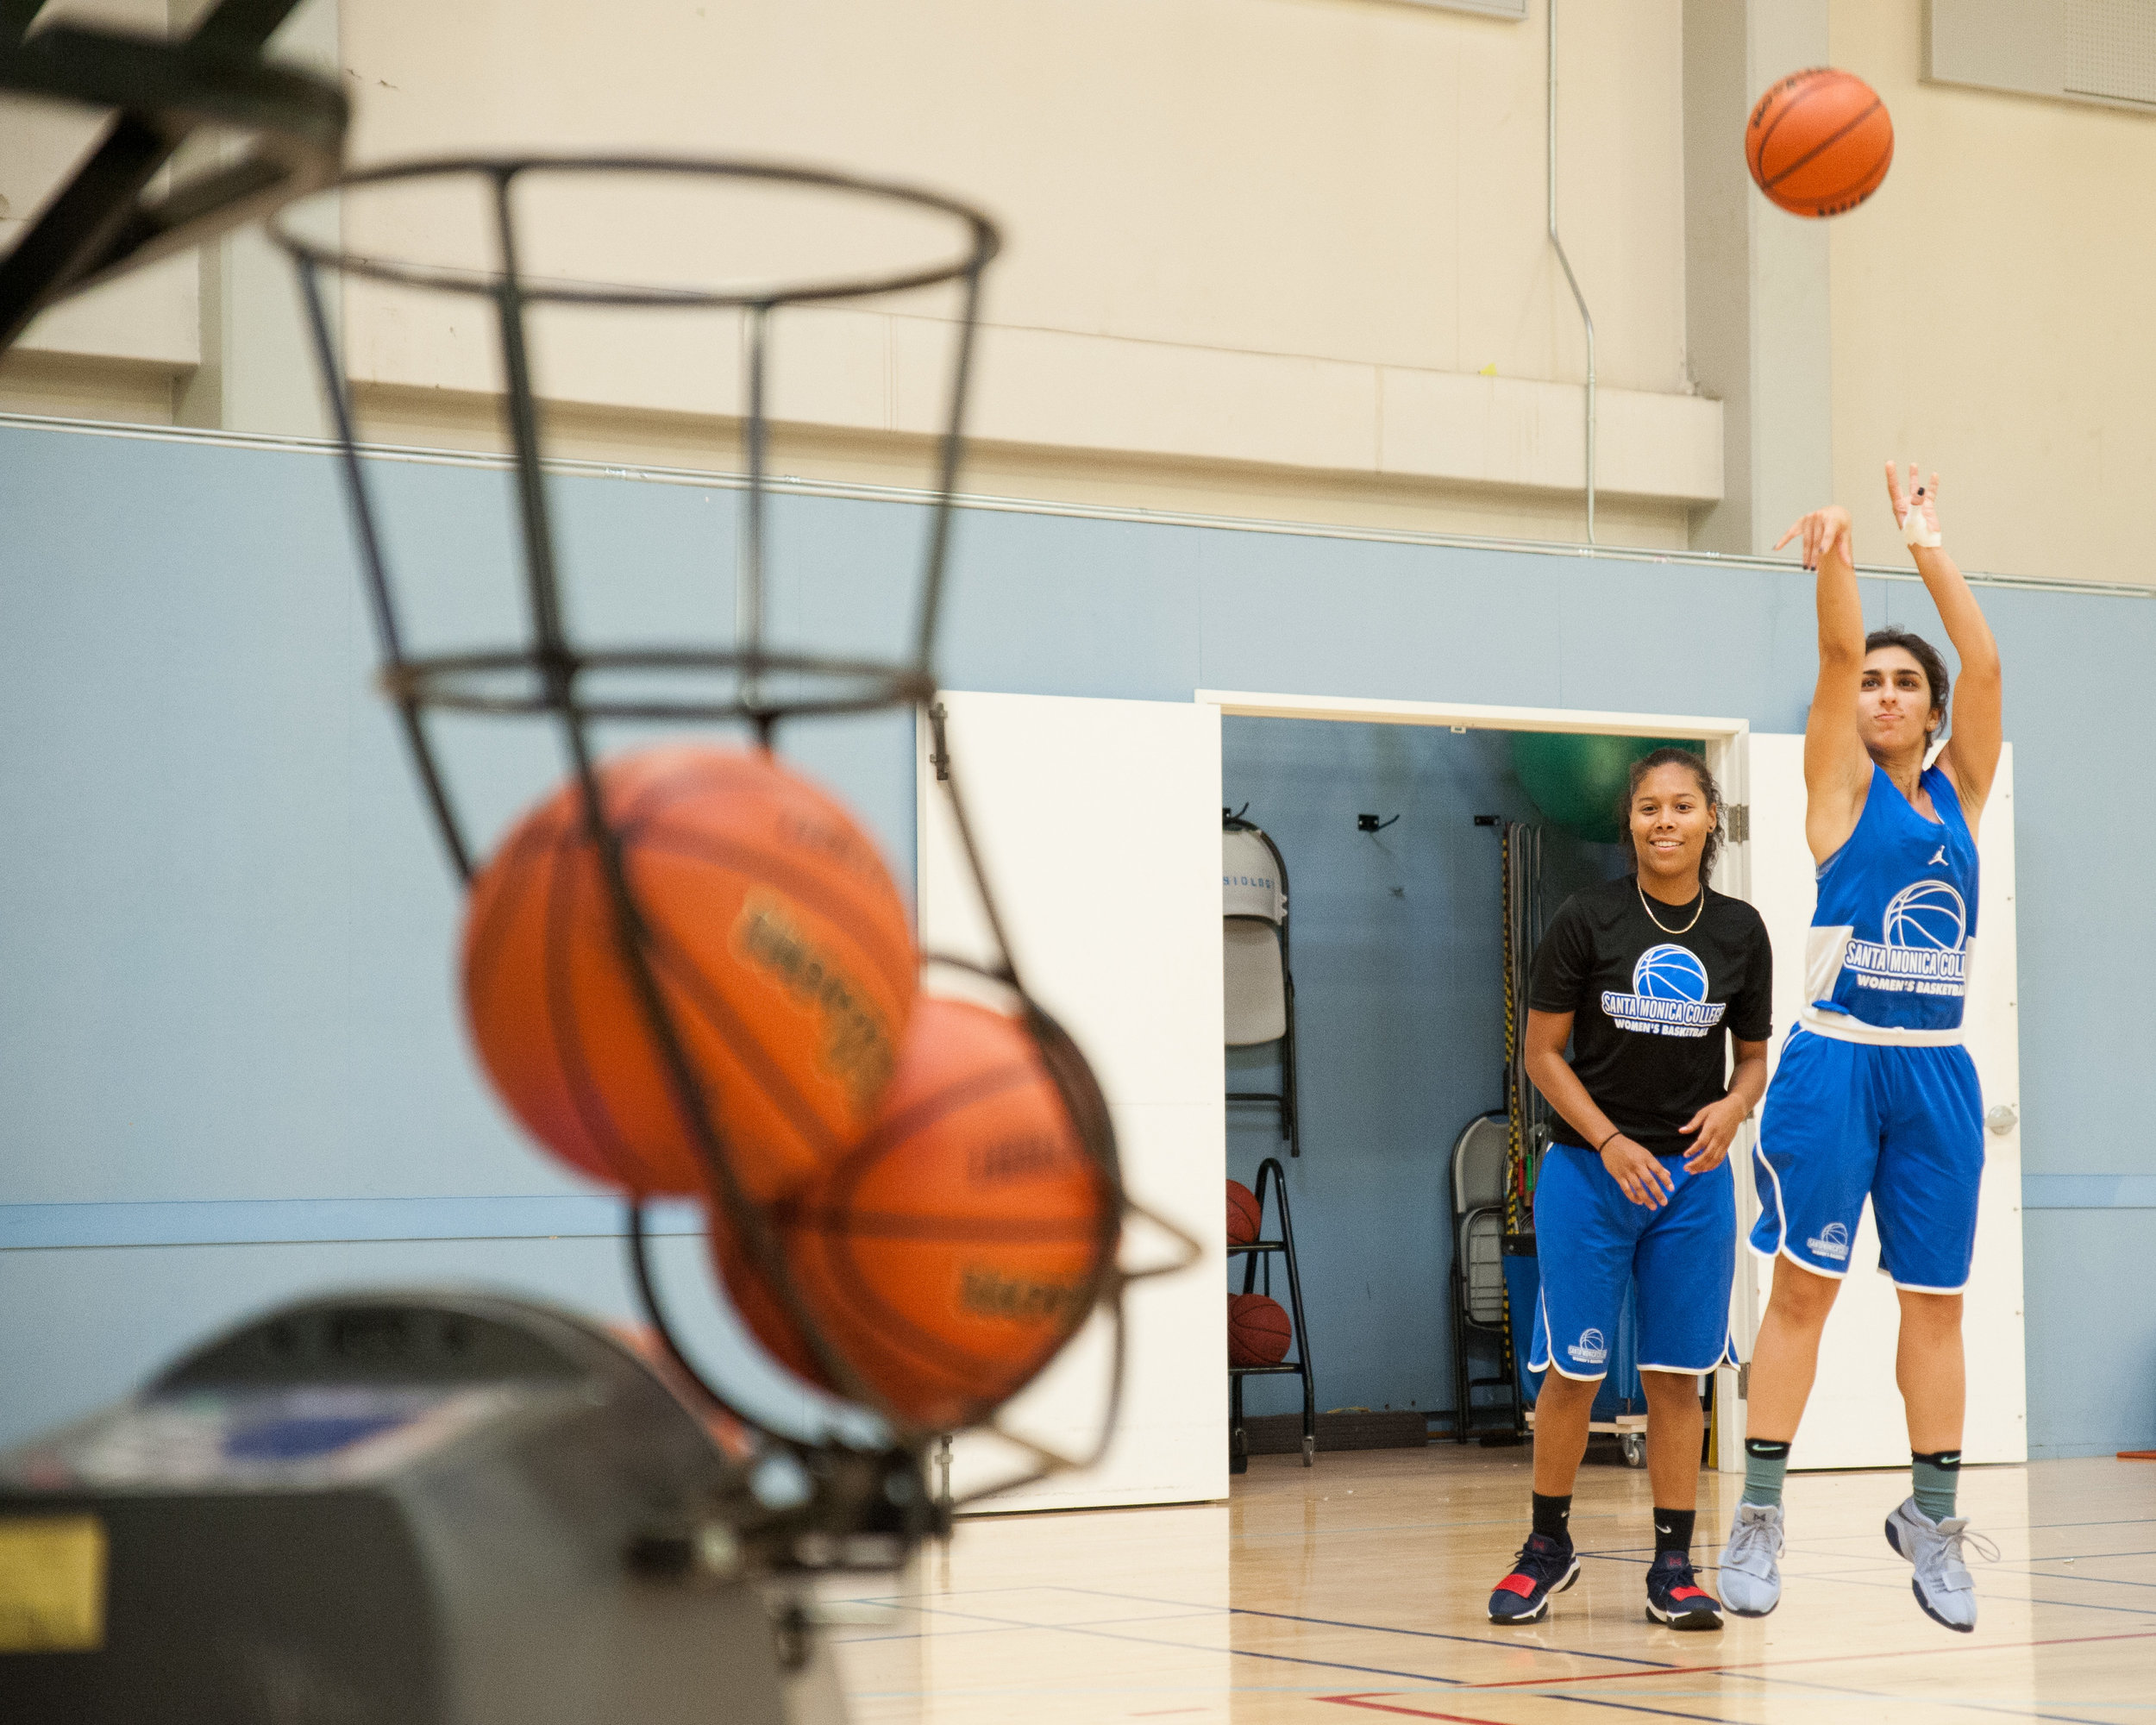 Sophmore guard Jessica Melamed (2) of the Santa Monica College Women's Basketball Team, shoots a three-pointer into a Dr. Dish machine during  practice at the SMC Pavilion. Melamed is currently leading the Corsairs in points per game in the first 2 games played with 18.5 PPG. Santa Monica College Main Campus, Santa Monica, Calif.. November 13, 2017. (Photo by: Justin Han)